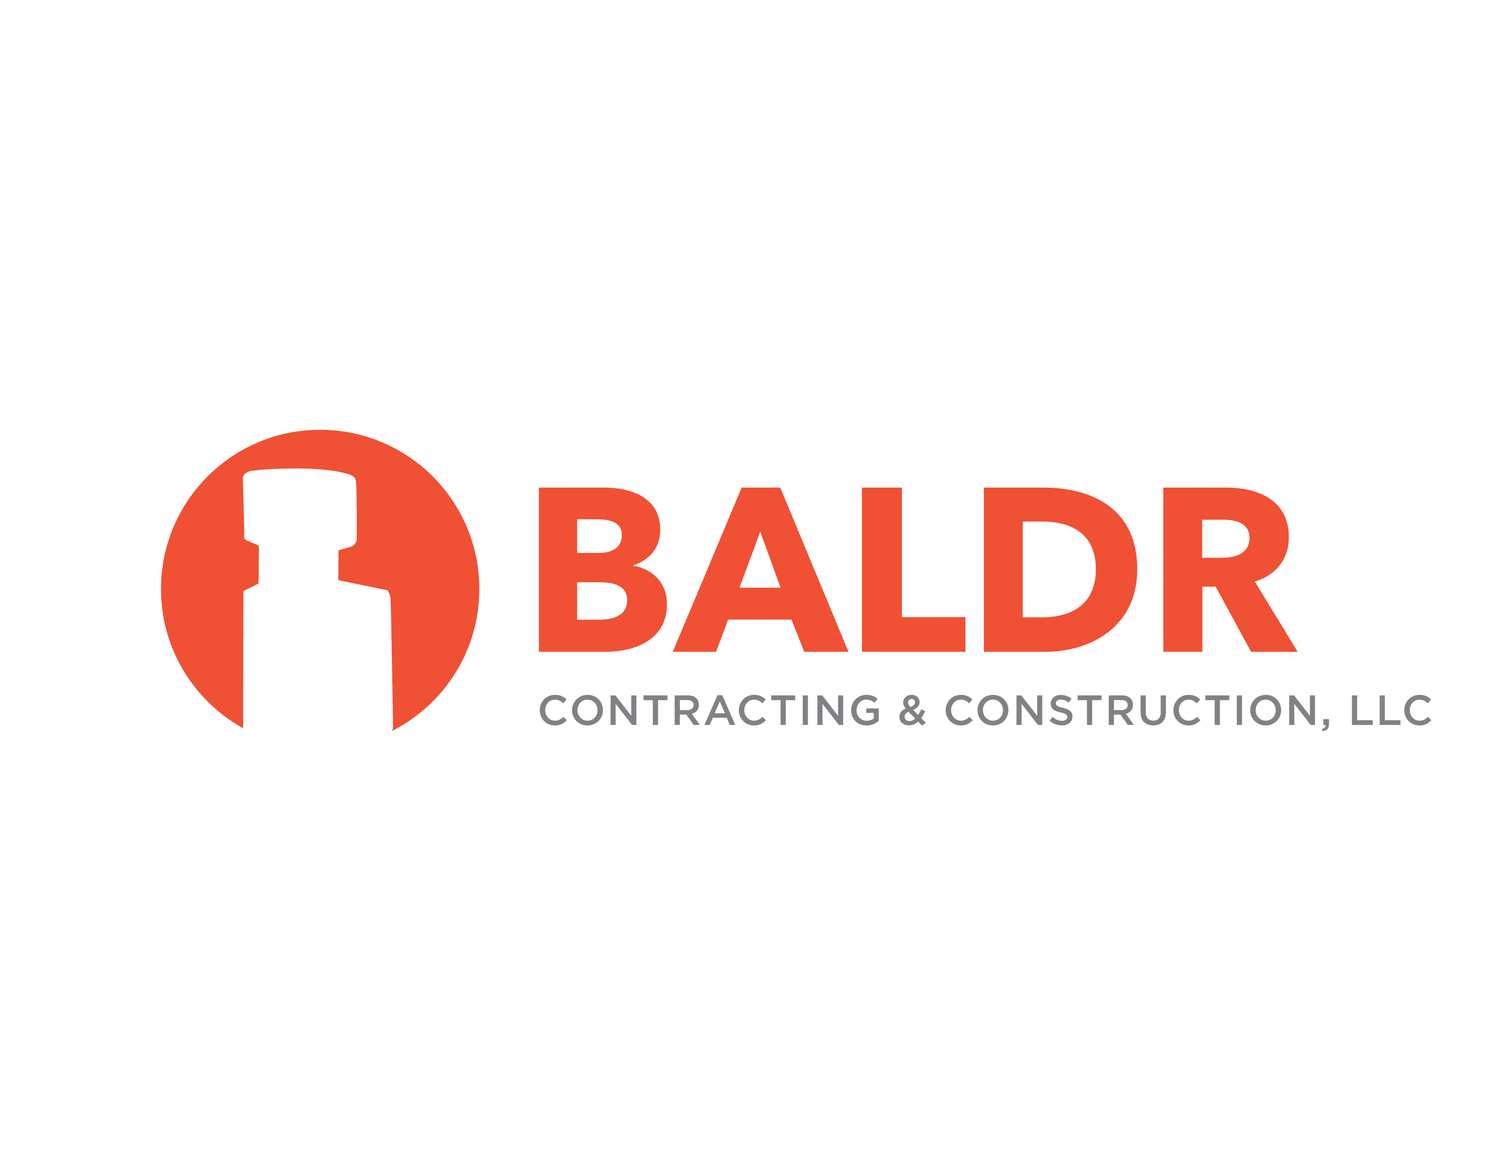 Baldr Contracting & Construction, LLC